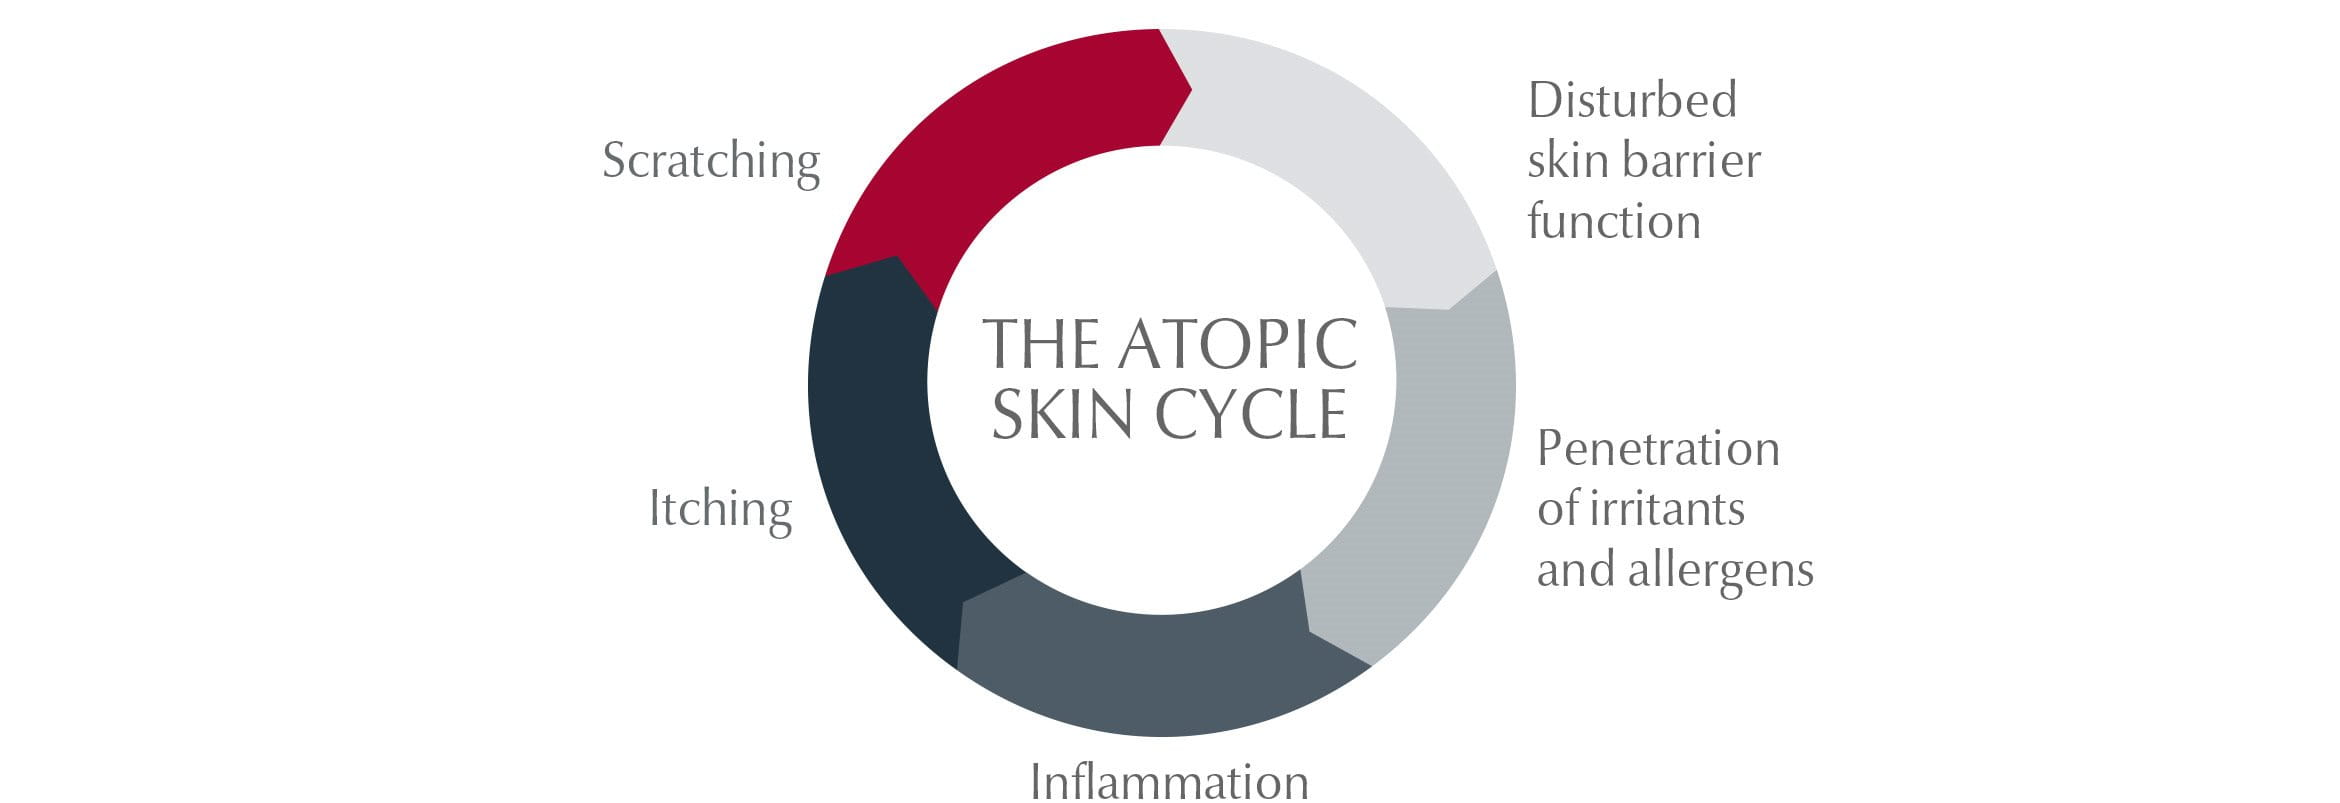 The atopic skin cycle